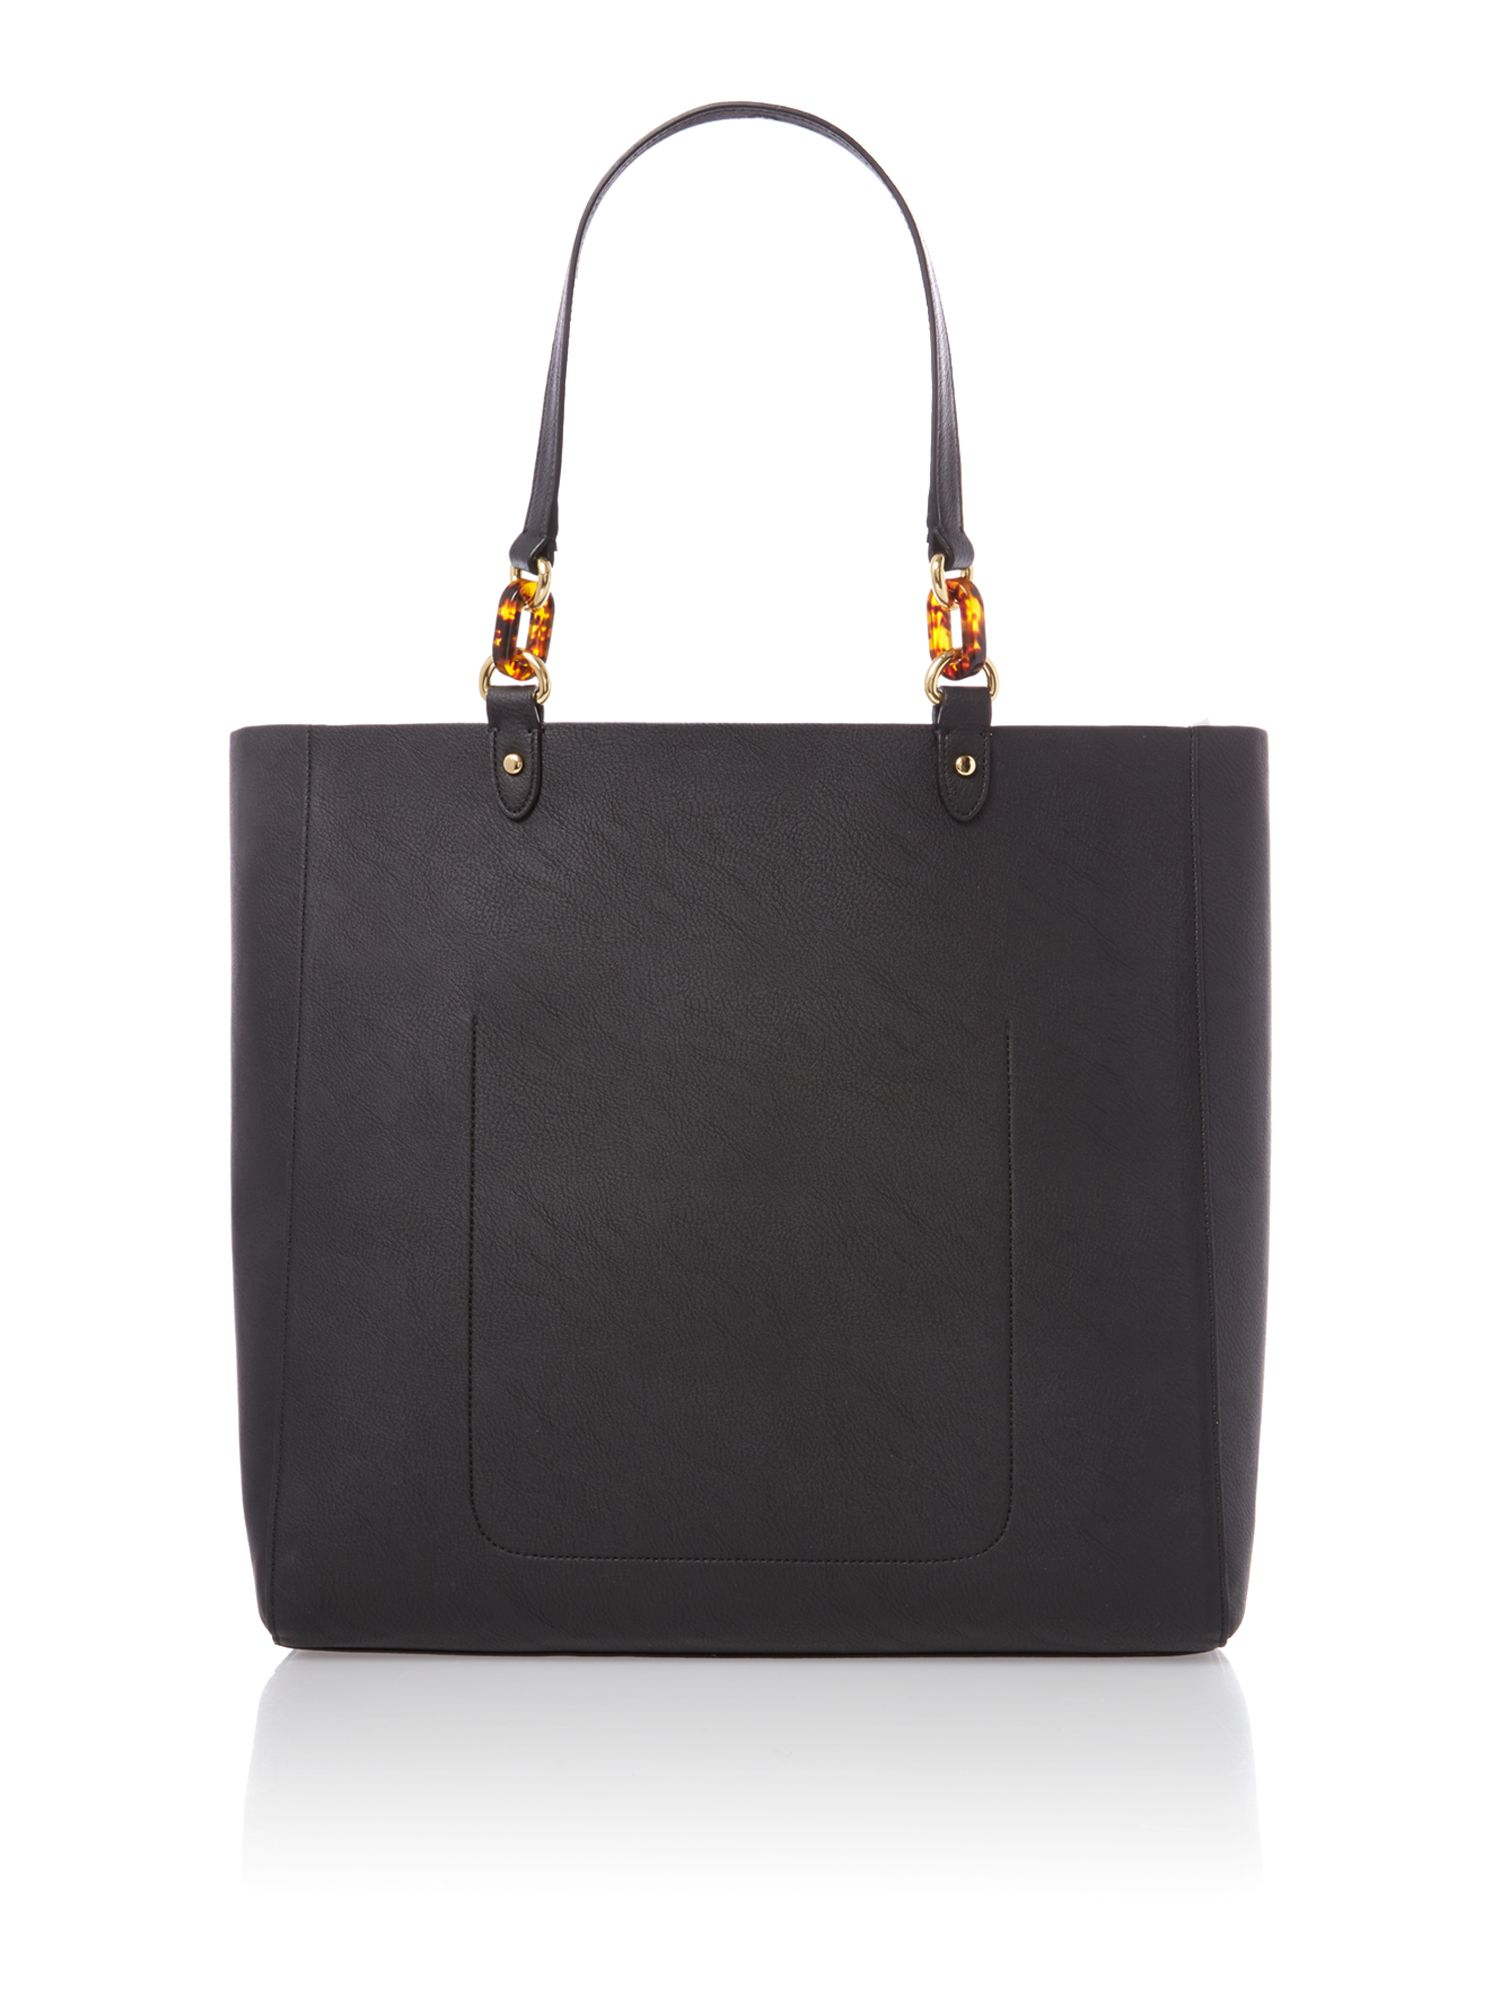 Bembridge black tote bag